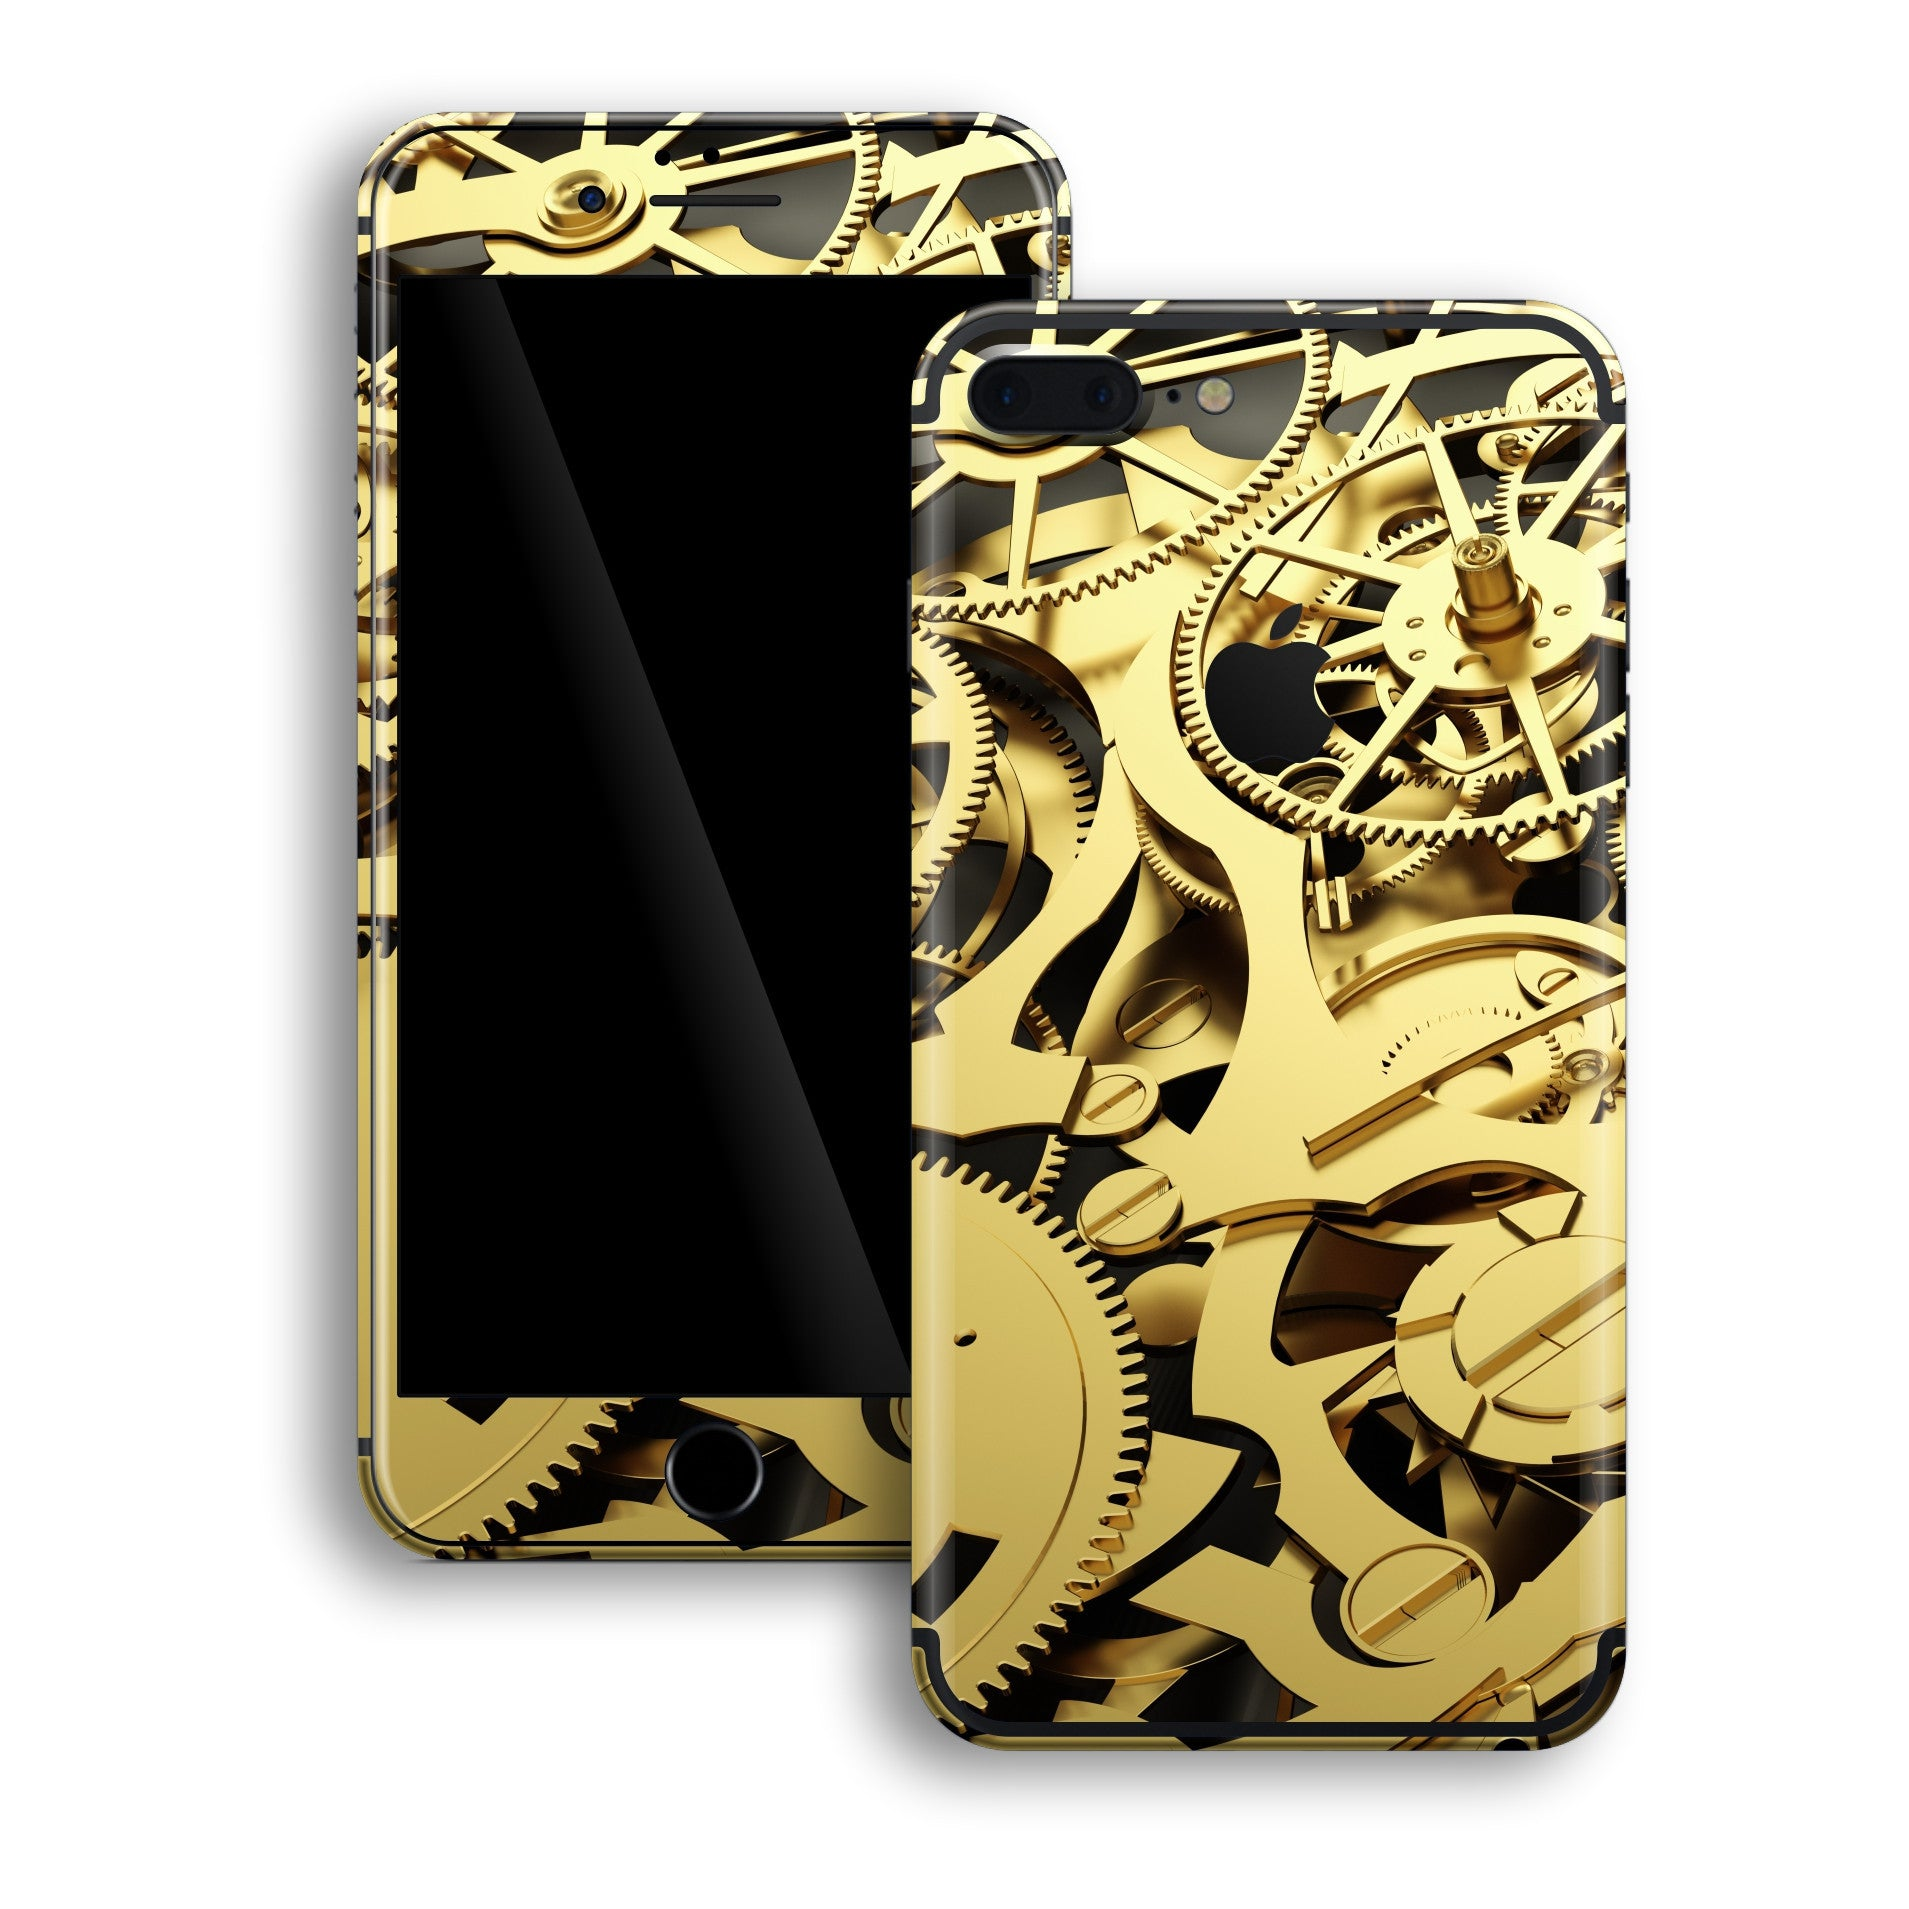 iPhone 7 PLUS Print Custom Signature Gold Mechanism Skin Wrap Decal by EasySkinz